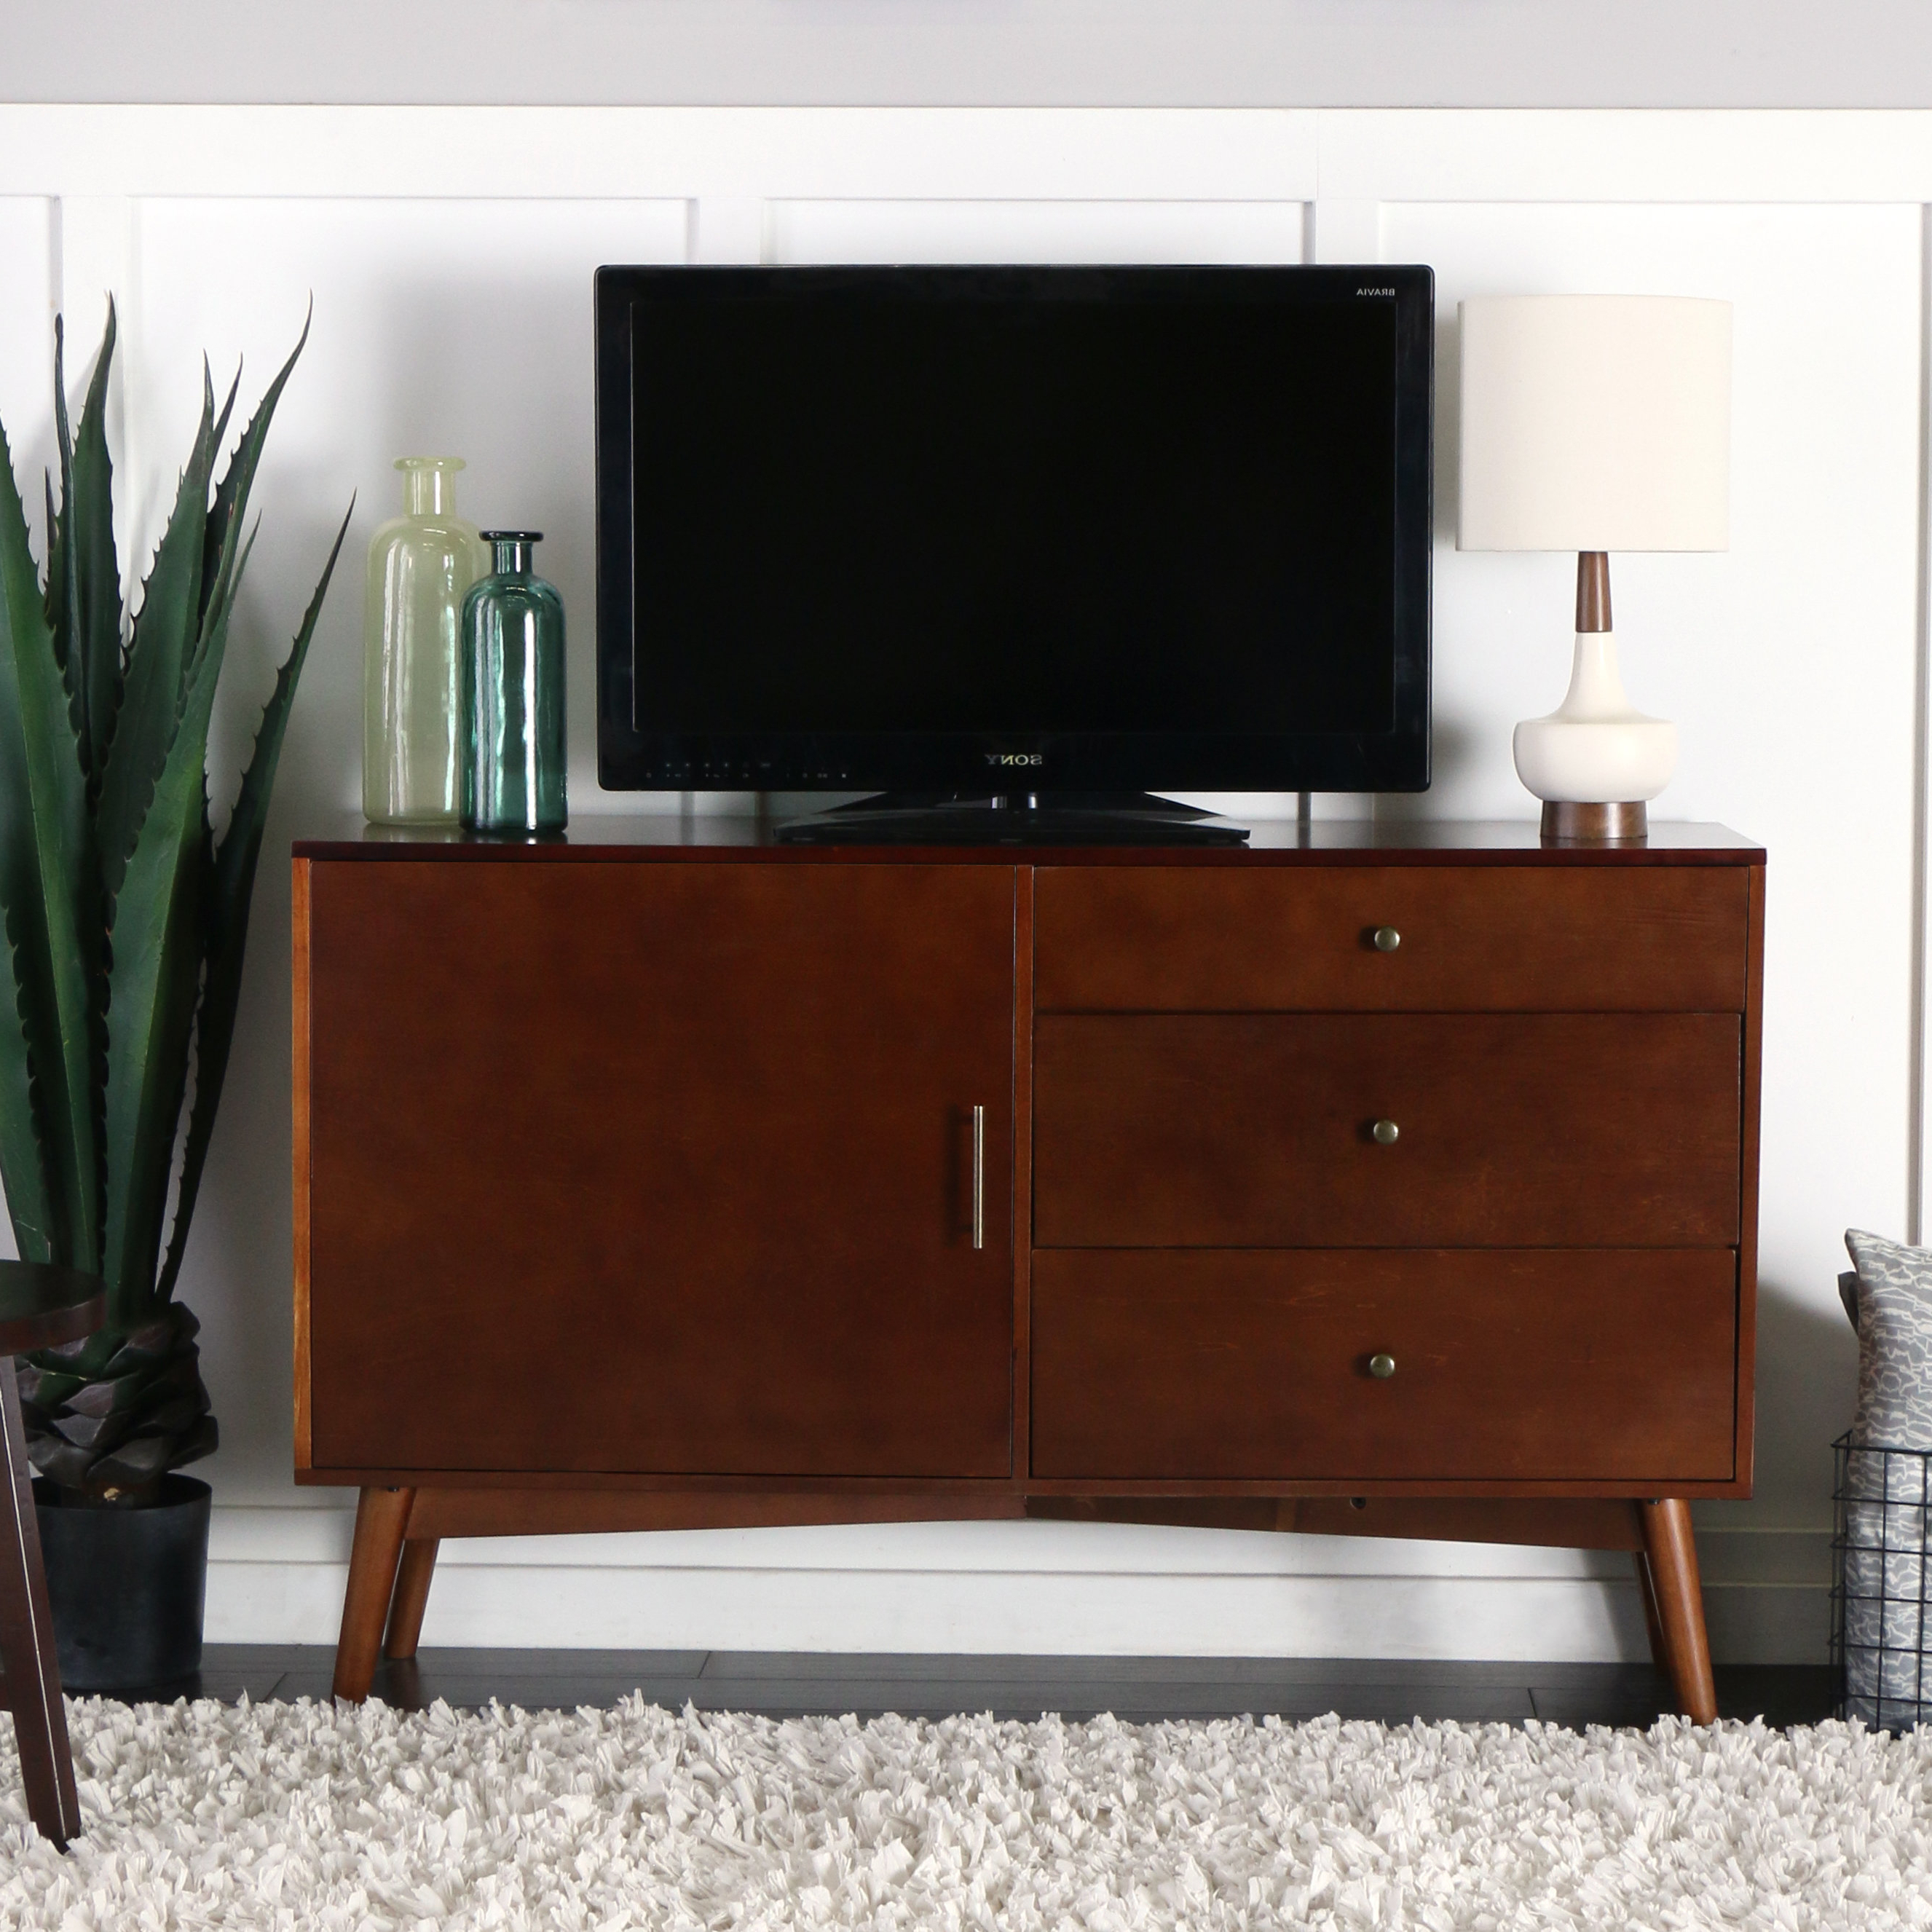 Tall Tv Stands You'll Love | Wayfair Regarding Canyon 54 Inch Tv Stands (Gallery 11 of 20)